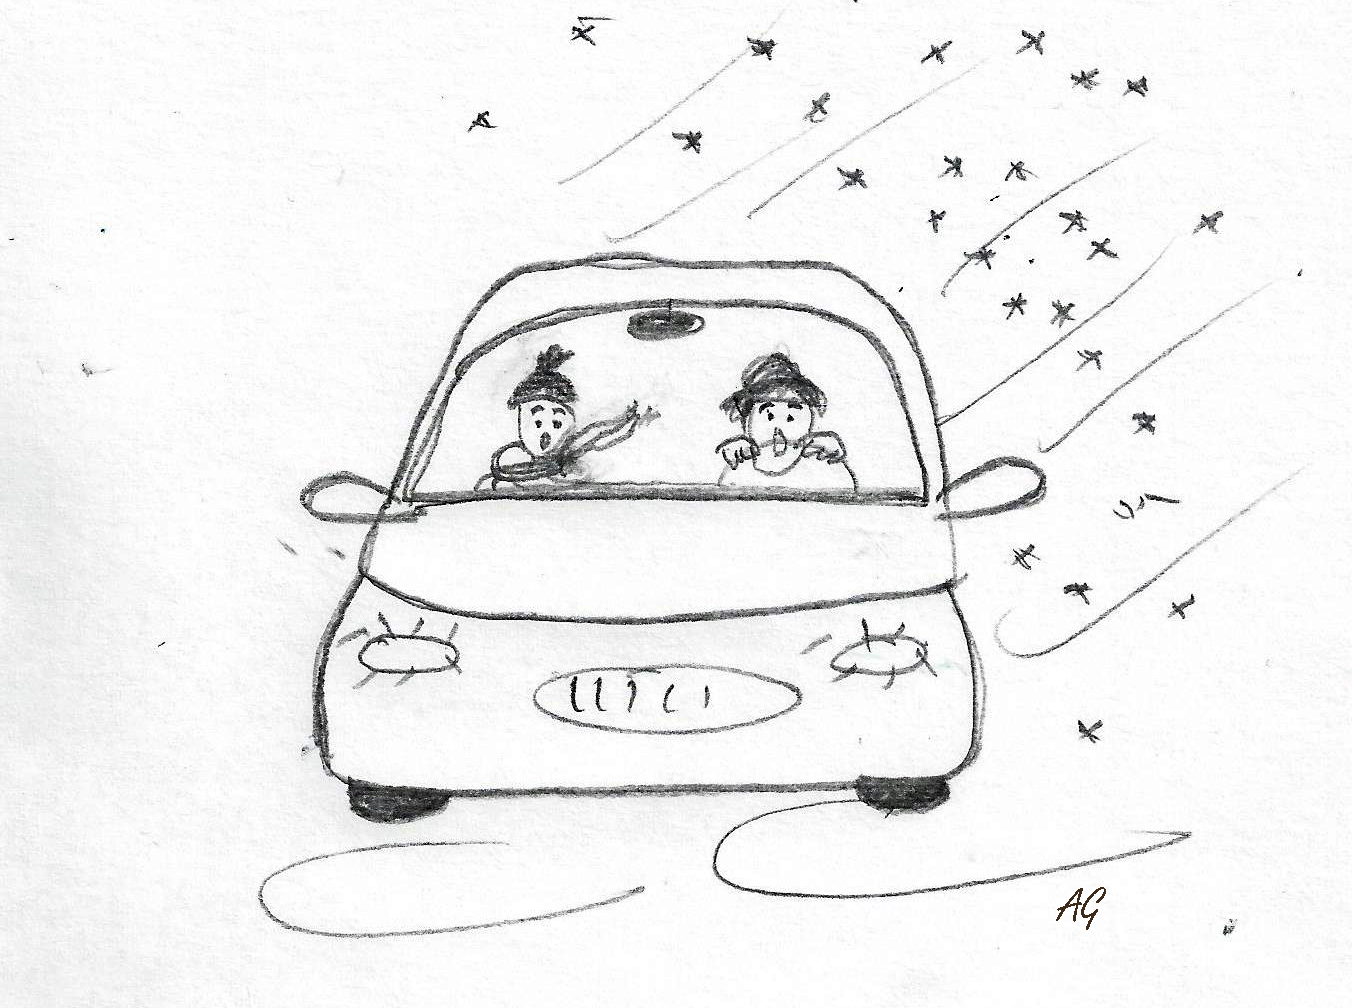 Sketch of two women having a horrible day driving a car through a snow storm (by Annette Gendler)